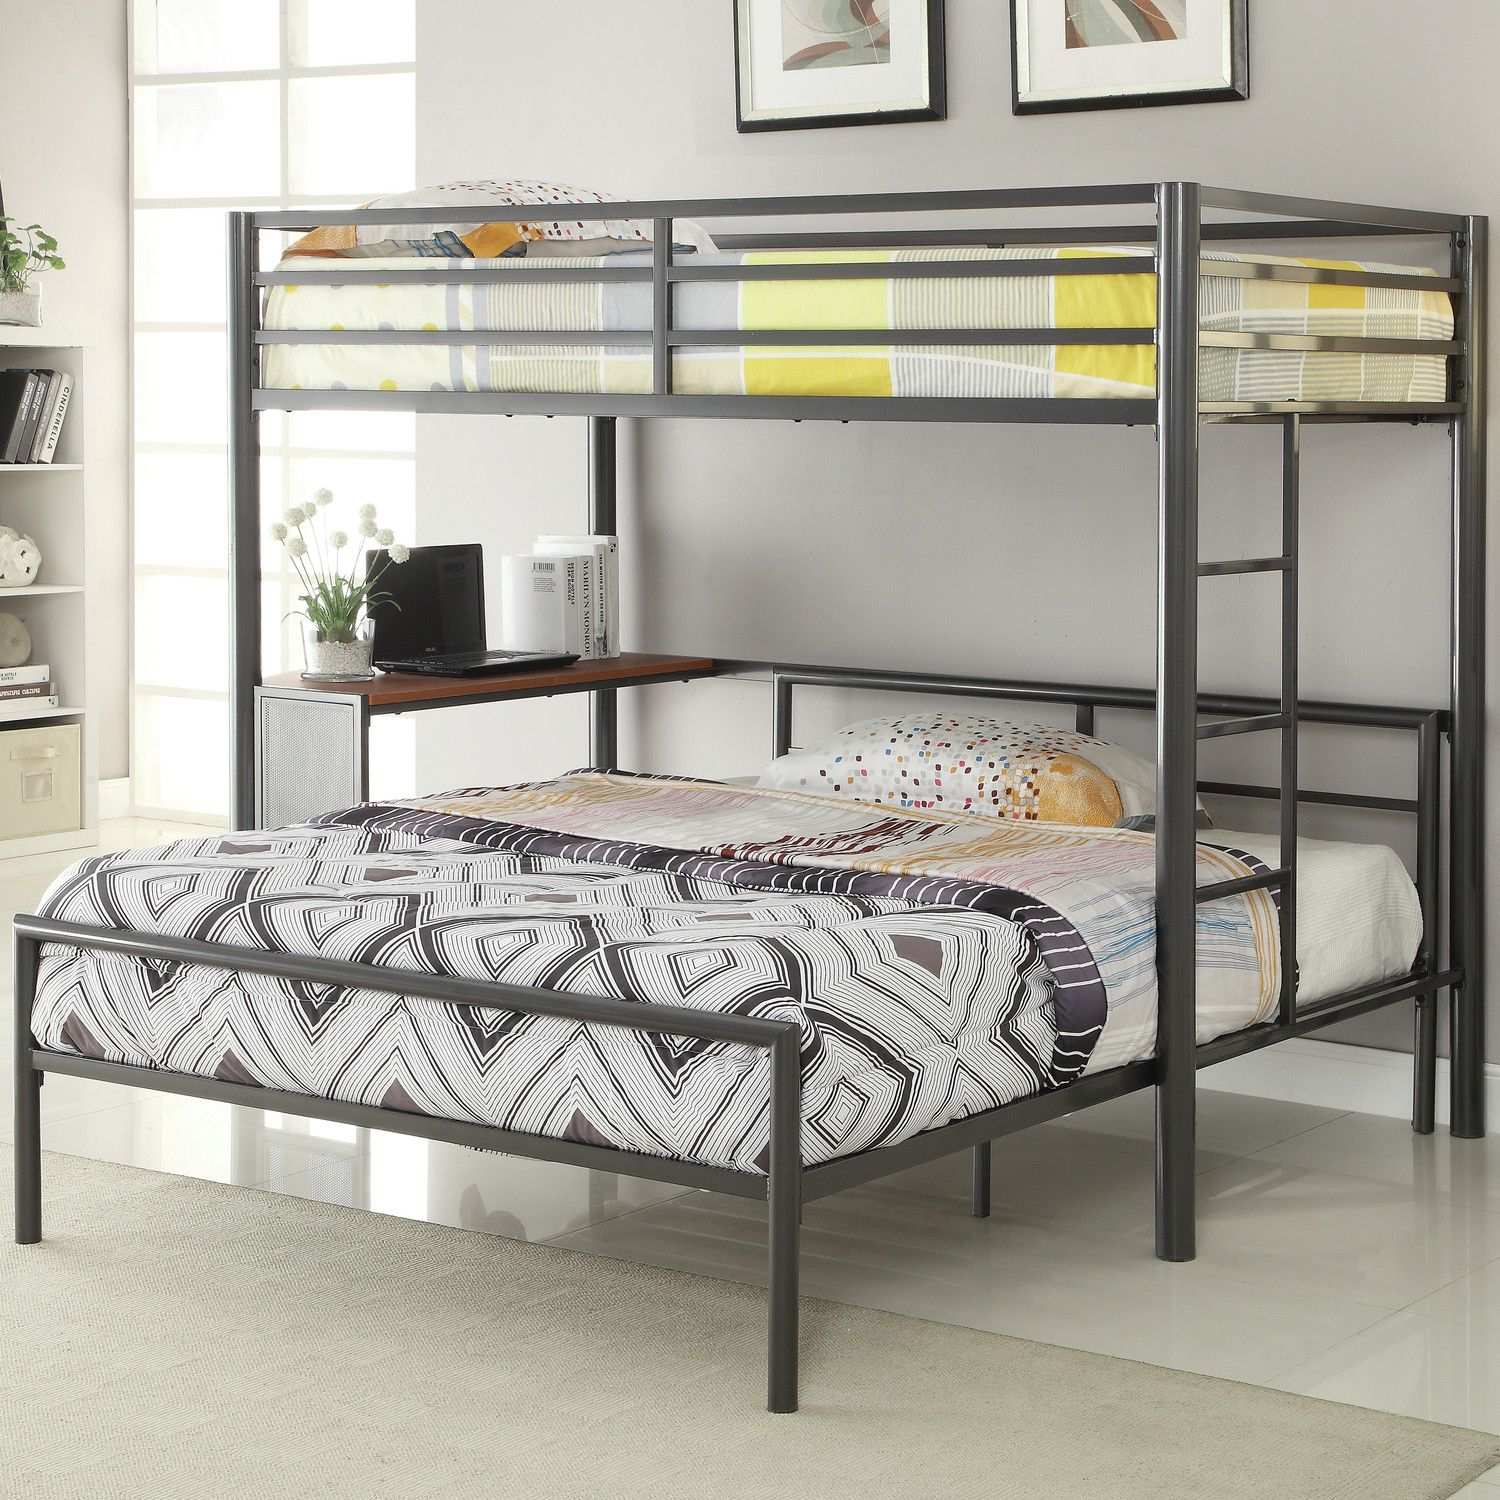 Loft bed ideas  Pin by Betty Guiles on Bunk Bed Ideas  Pinterest  Bunk bed Loft